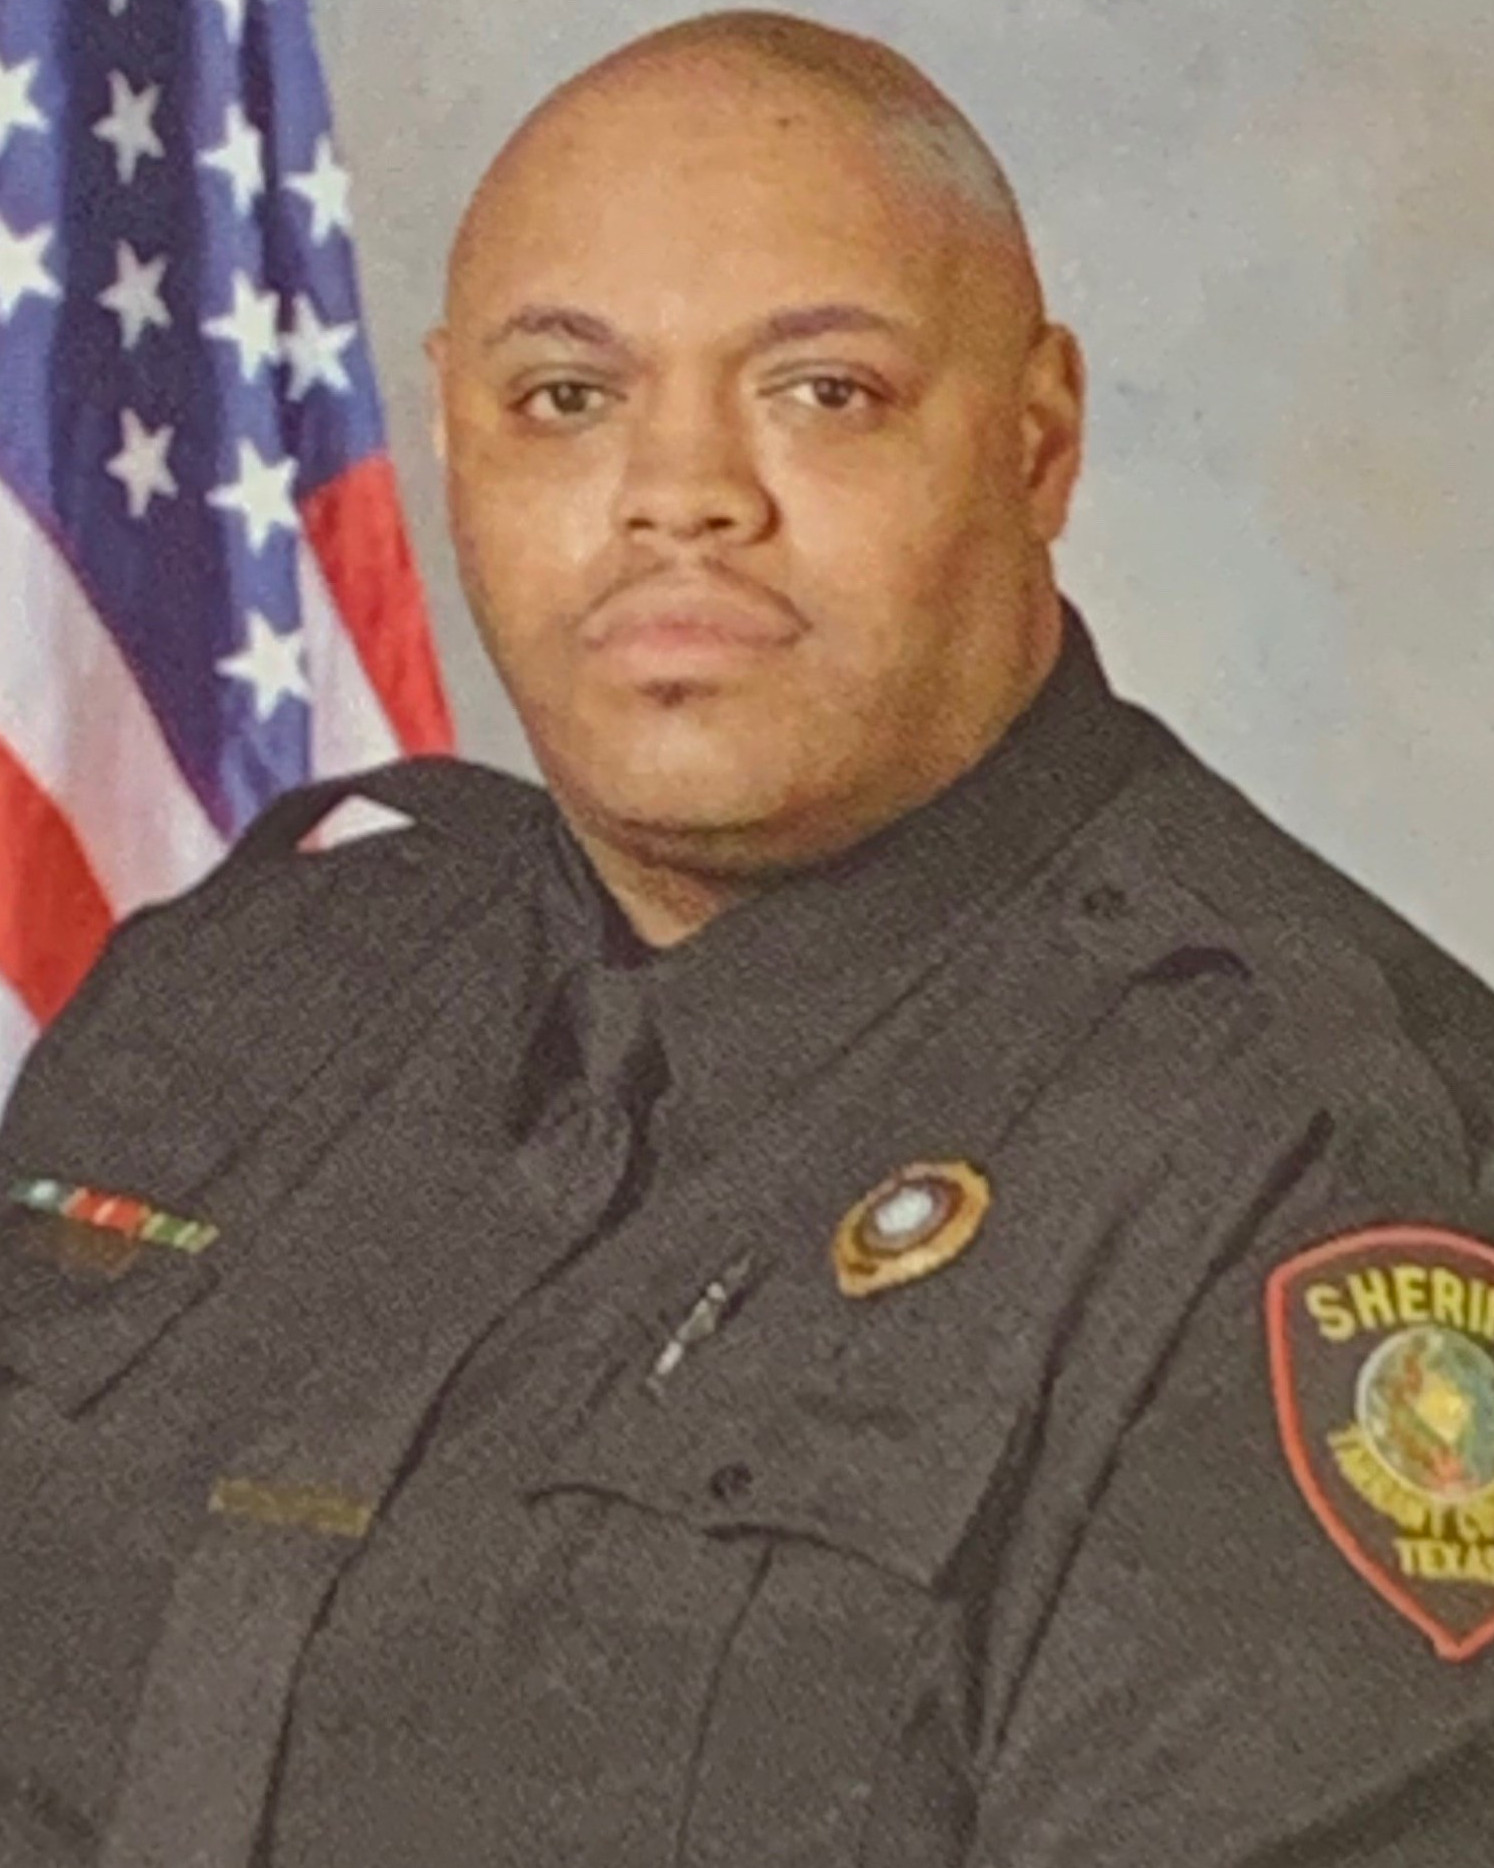 Corporal Charles E. Holt | Tarrant County Sheriff's Office, Texas